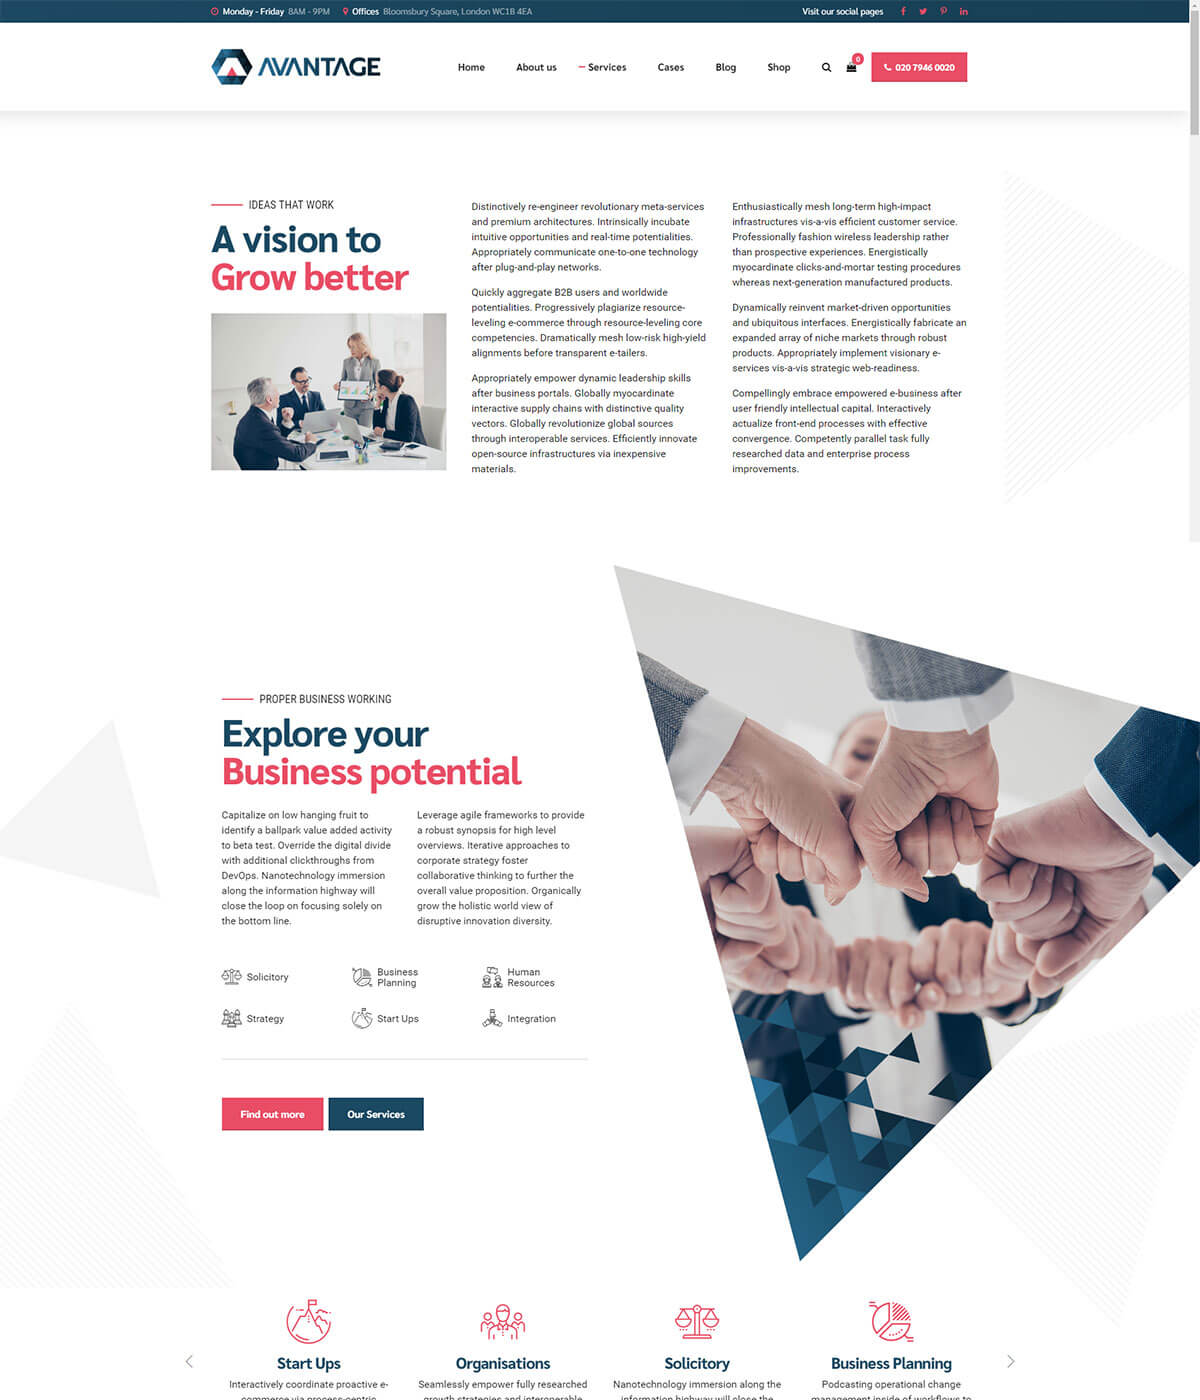 http://avantage.bold-themes.com/wp-content/uploads/2019/05/business-08-process.jpg